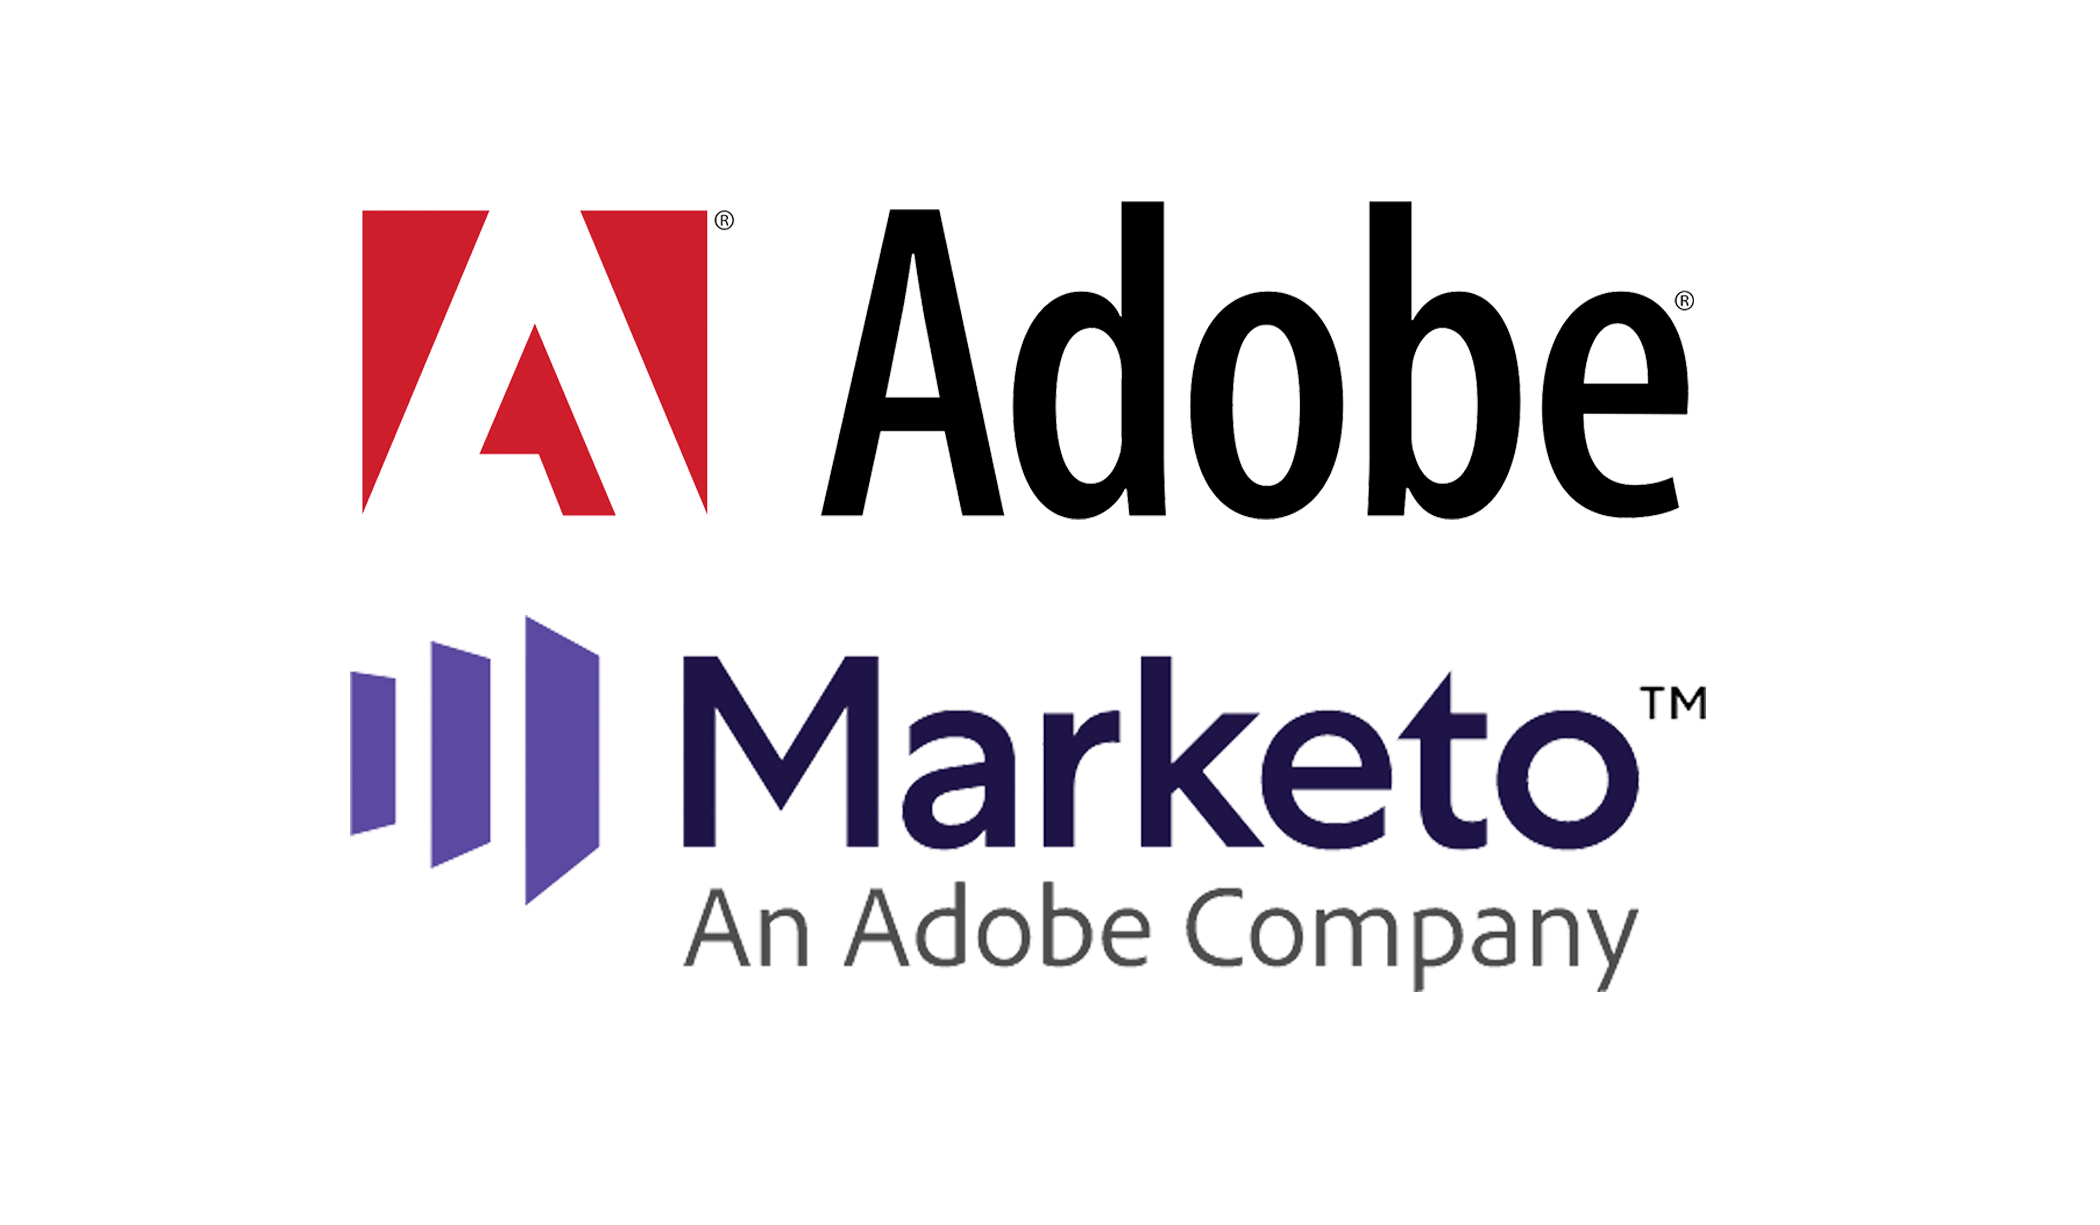 What the Adobe-Marketo Merger Means for Marketers